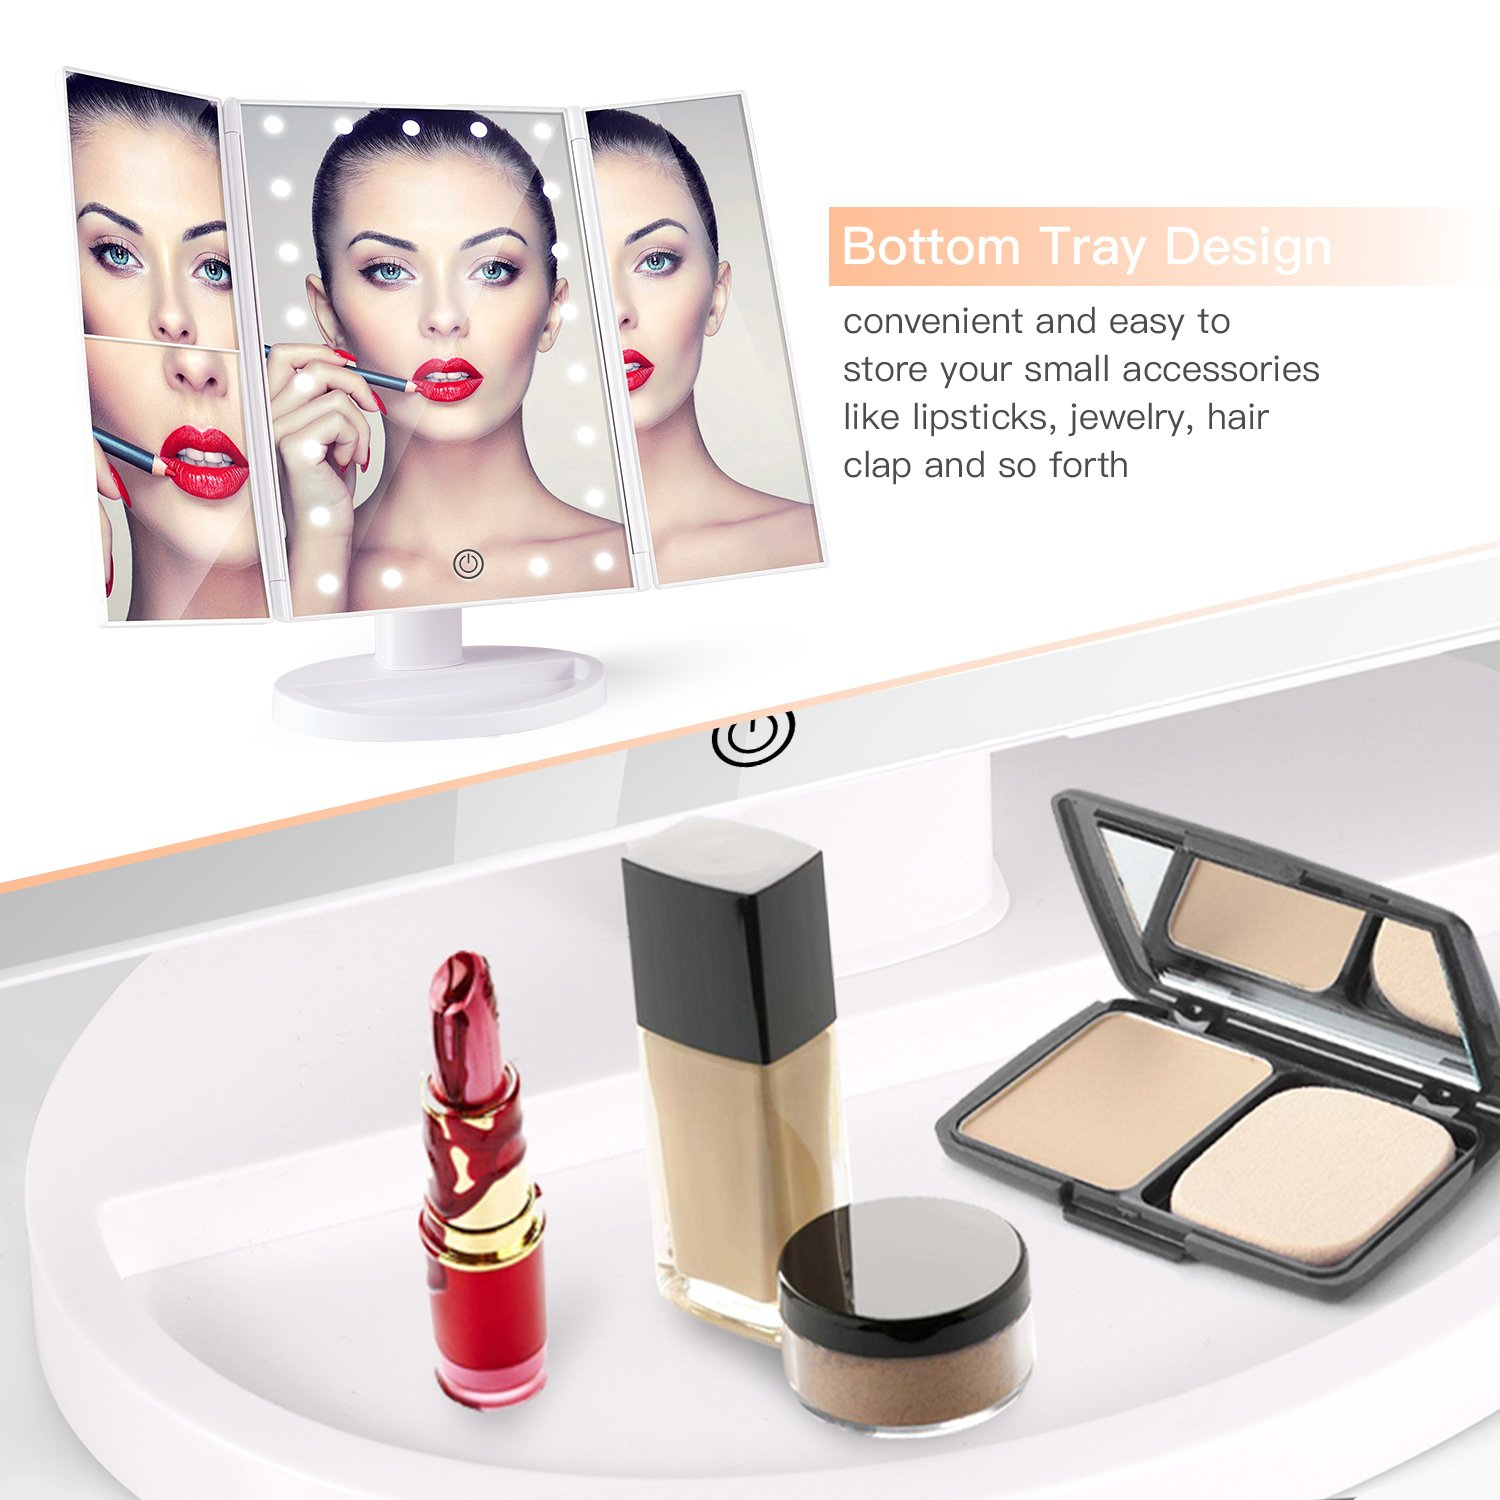 BESTOPE Makeup Vanity Mirror with 21 LED Lights 3X/2X Magnifying Touch Screen,Dual Power Supply,180° Adjustable Rotation,Countertop Cosmetic, 2 Pound by BESTOPE (Image #6)